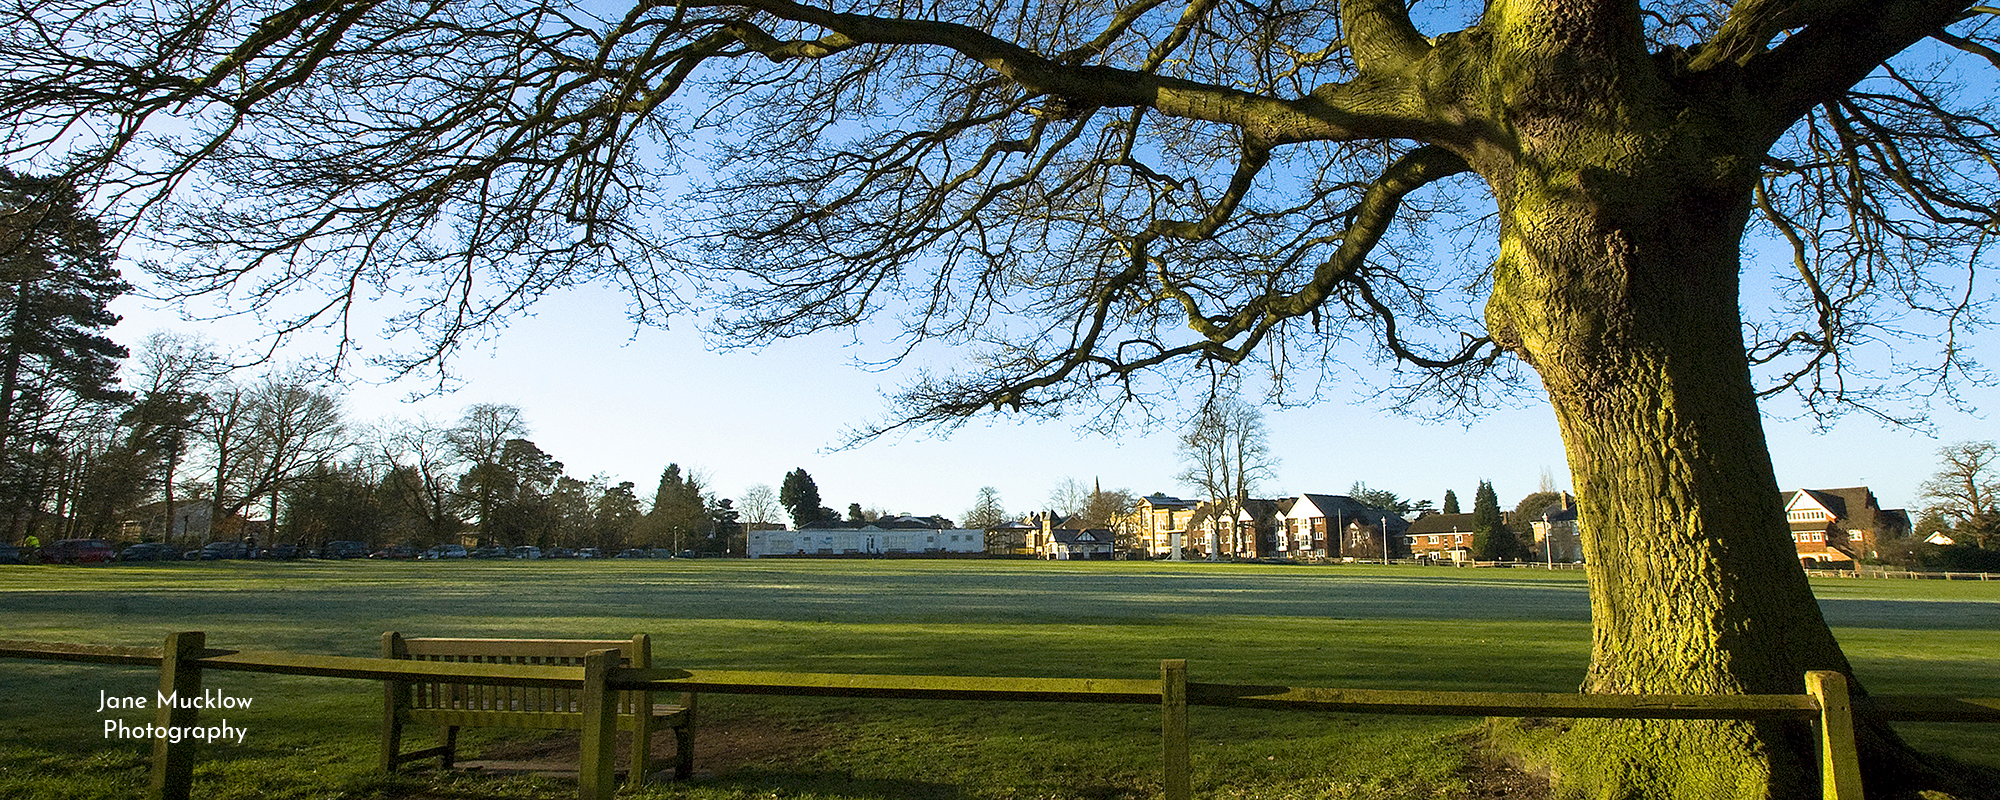 Photo by Jane Mucklow of Sevenoaks Vine cricket ground on a frosty morning, with the old oak tree, Sevenoaks, Kent, available as a canvas for your wall.